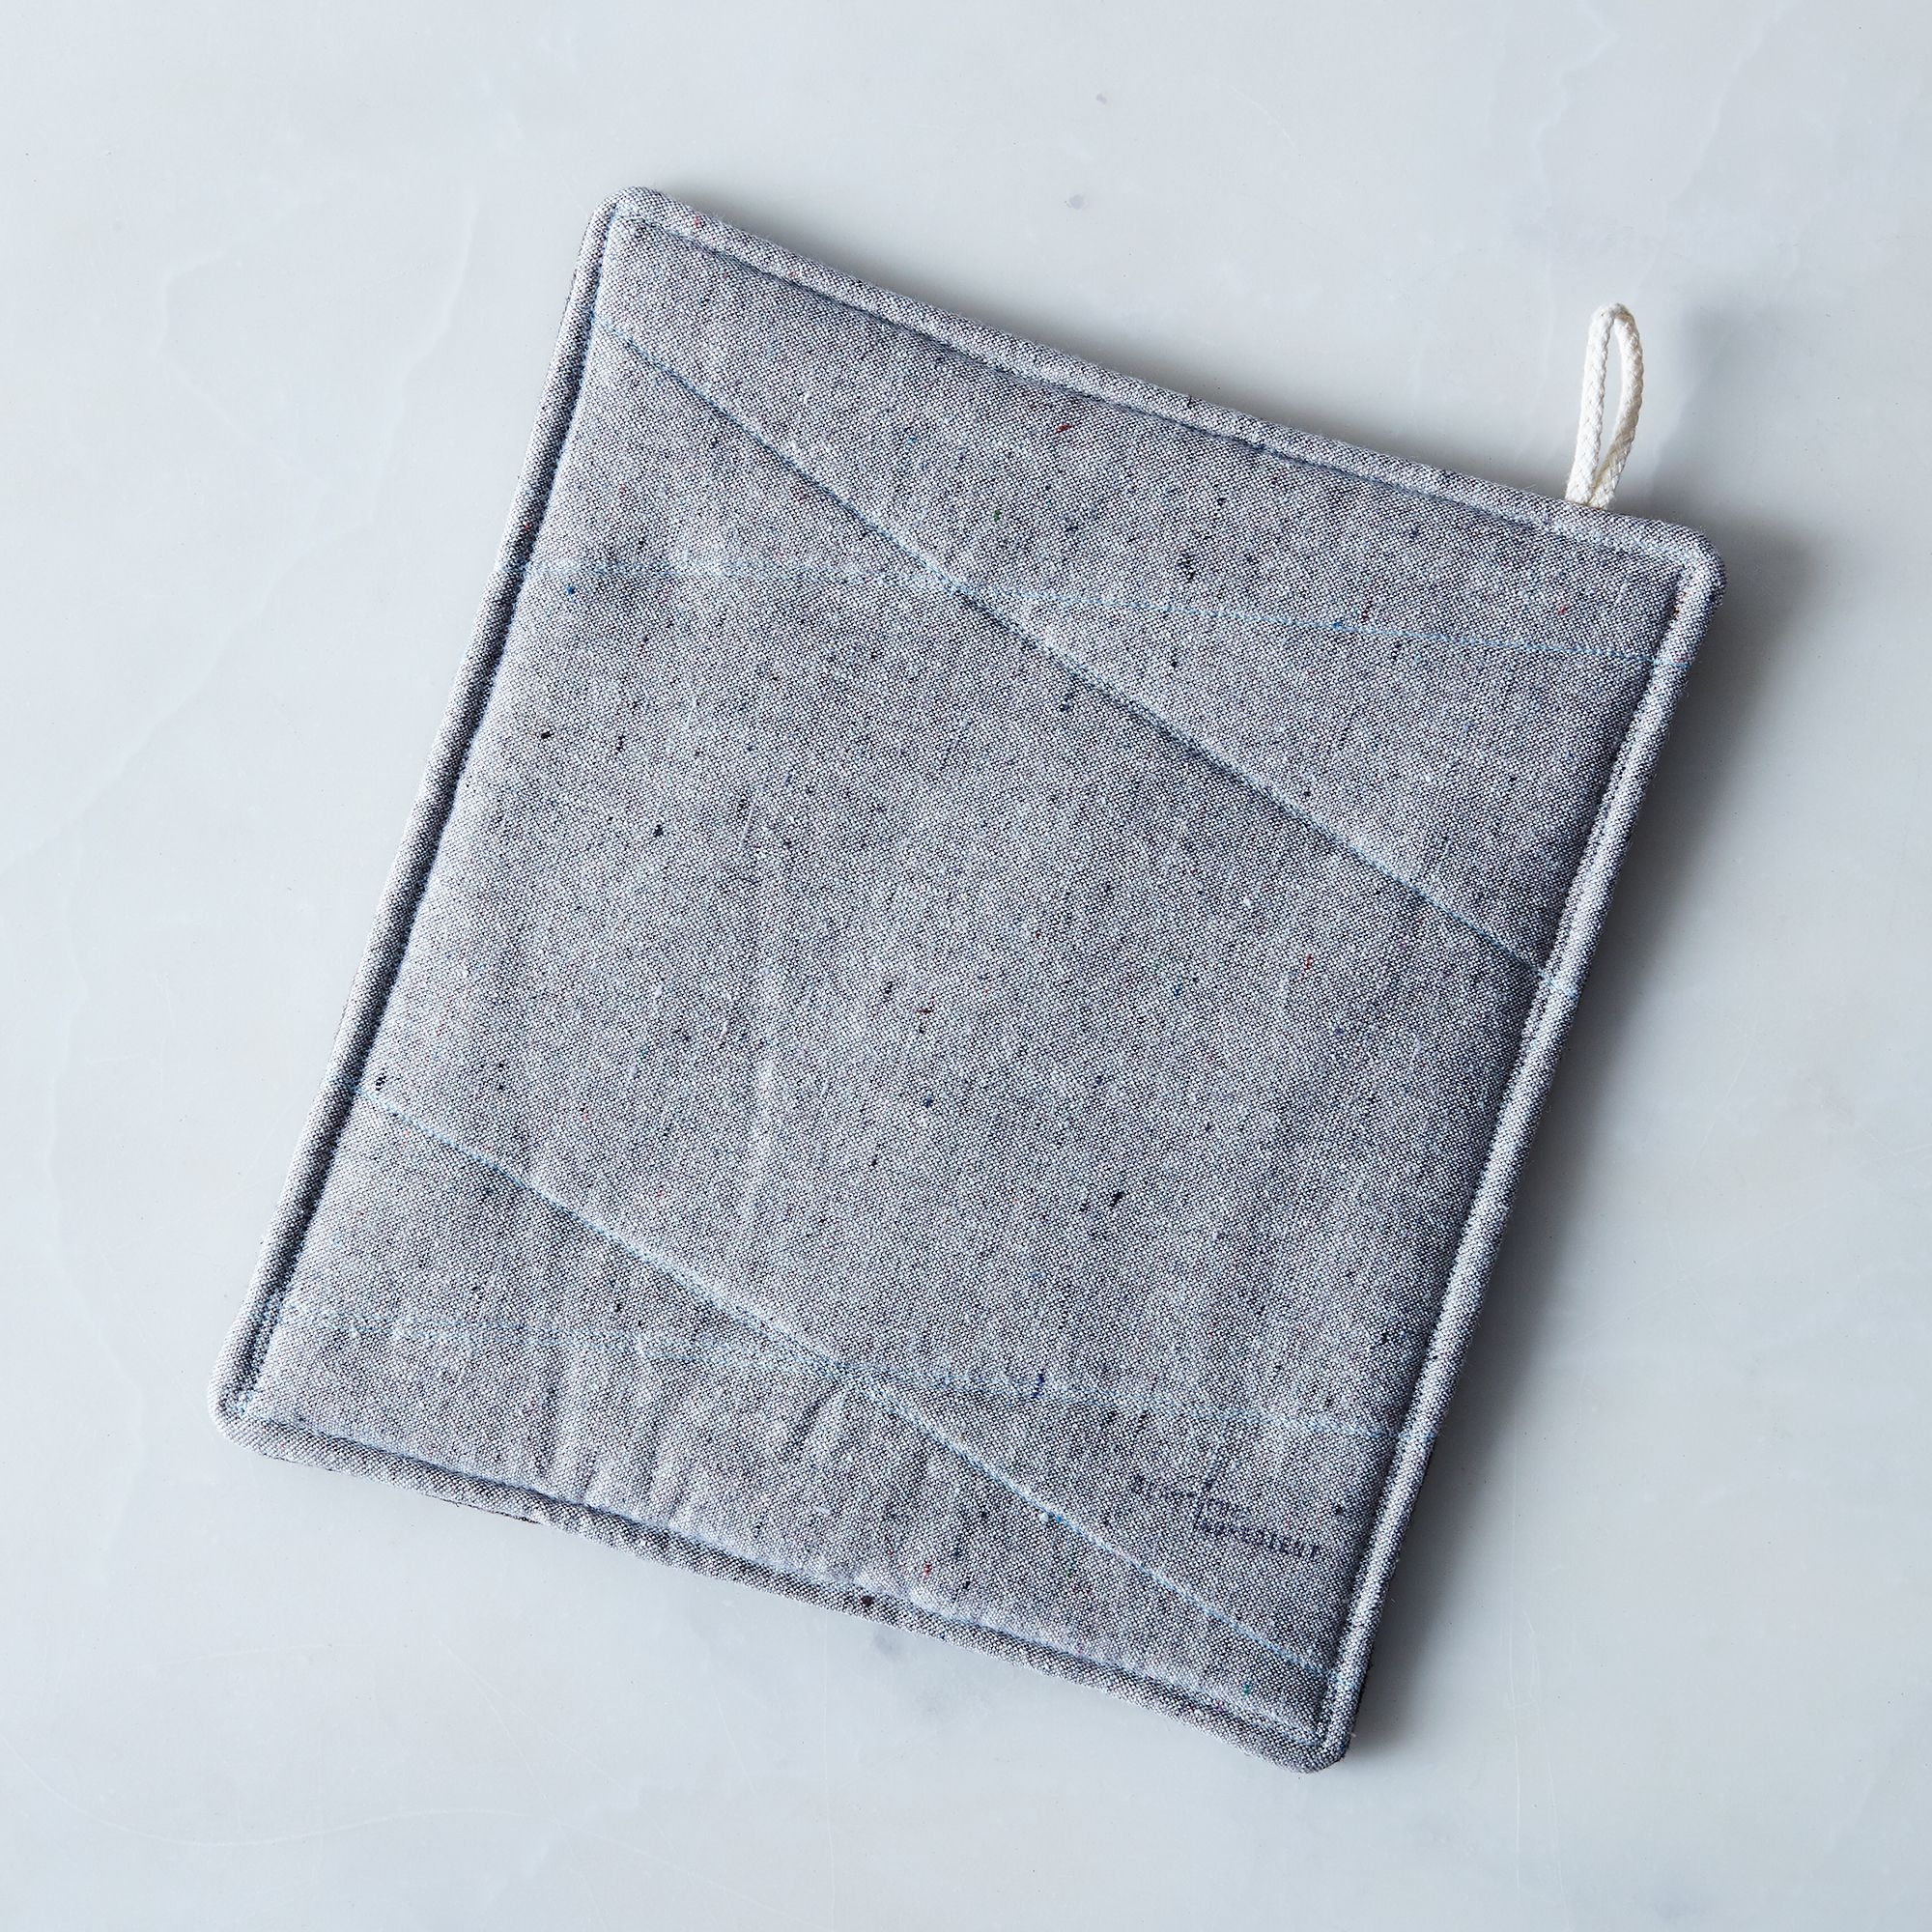 C726b20a 1834 4140 be1c 099e69f0fa2d  2016 1123 beautiful ingredient grey reversible large trivet detail silo rocky luten 214